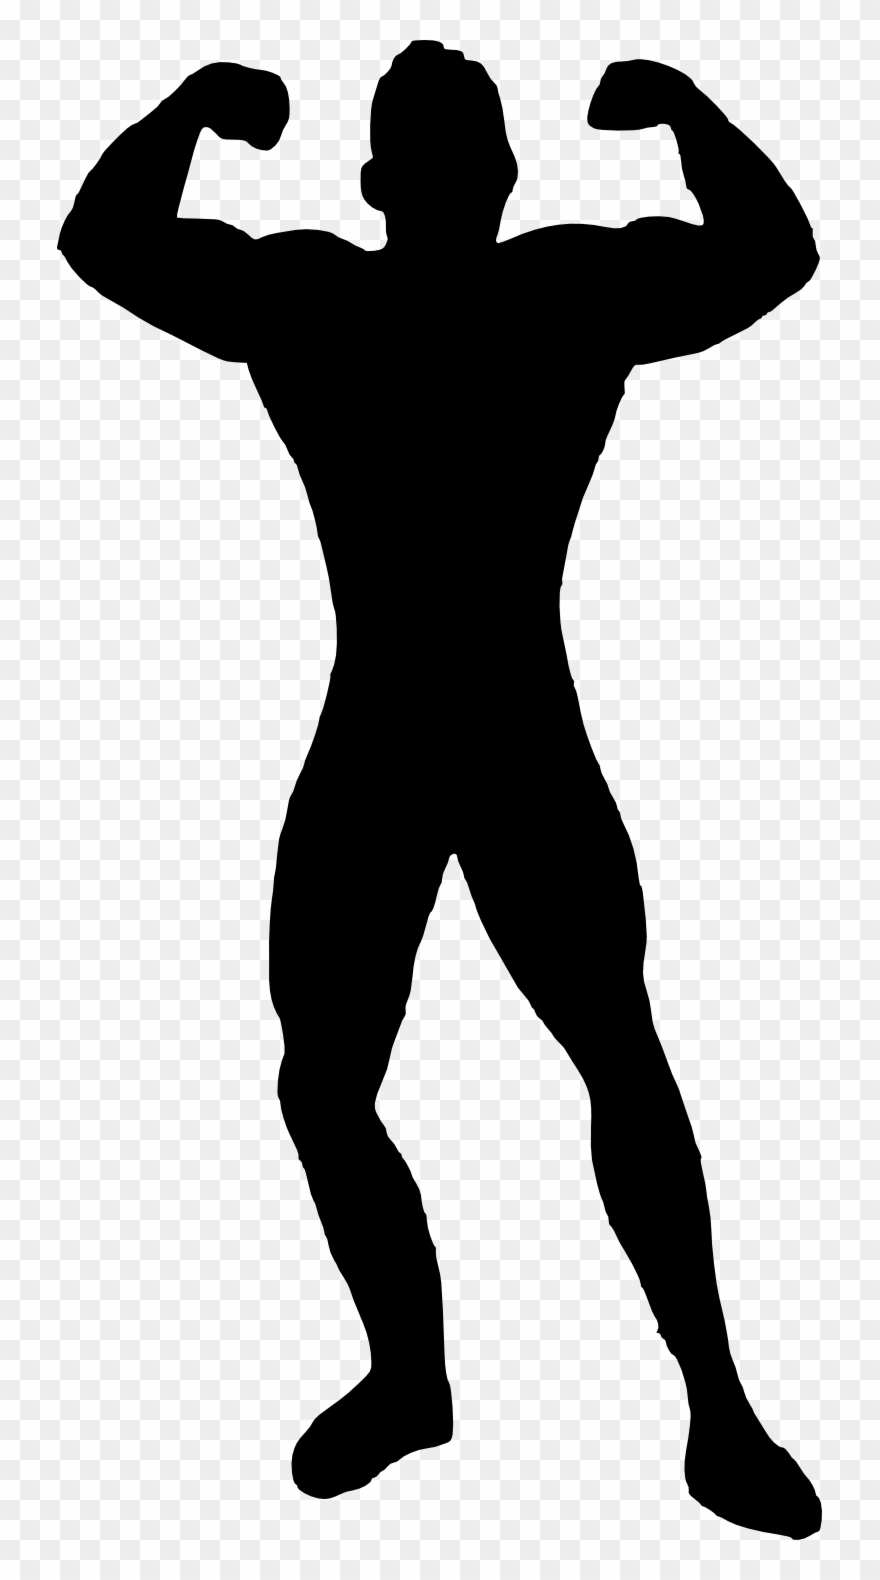 Muscle Man Bodybuilder Silhouette.